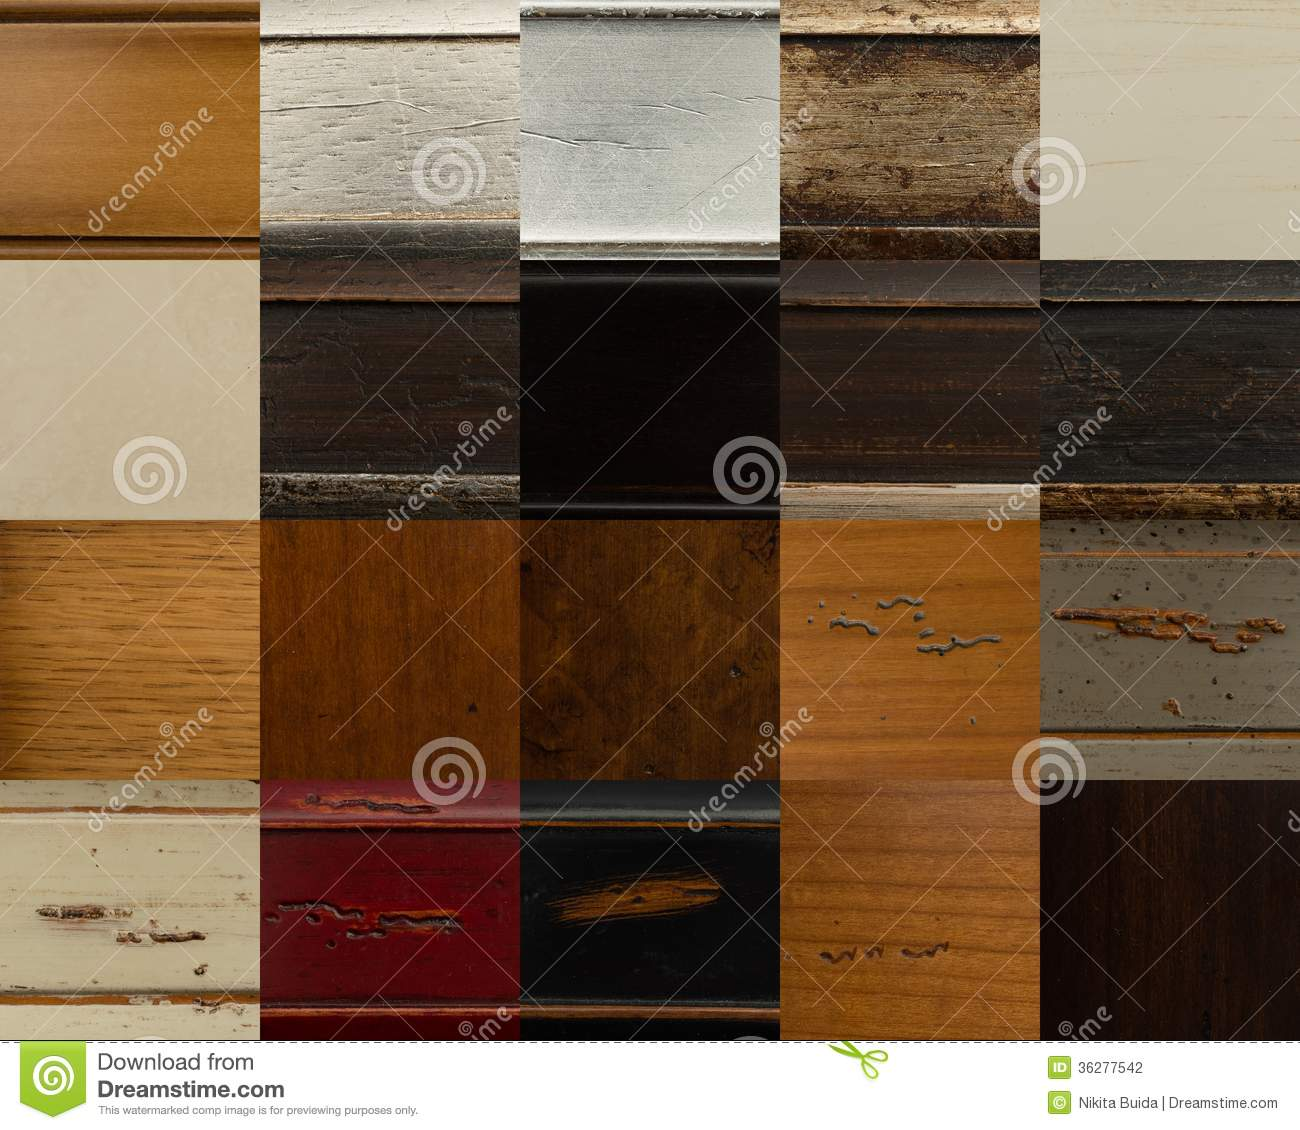 Superb img of Wood Material Samples Stock Photography Image: 36277542 with #85A724 color and 1300x1130 pixels